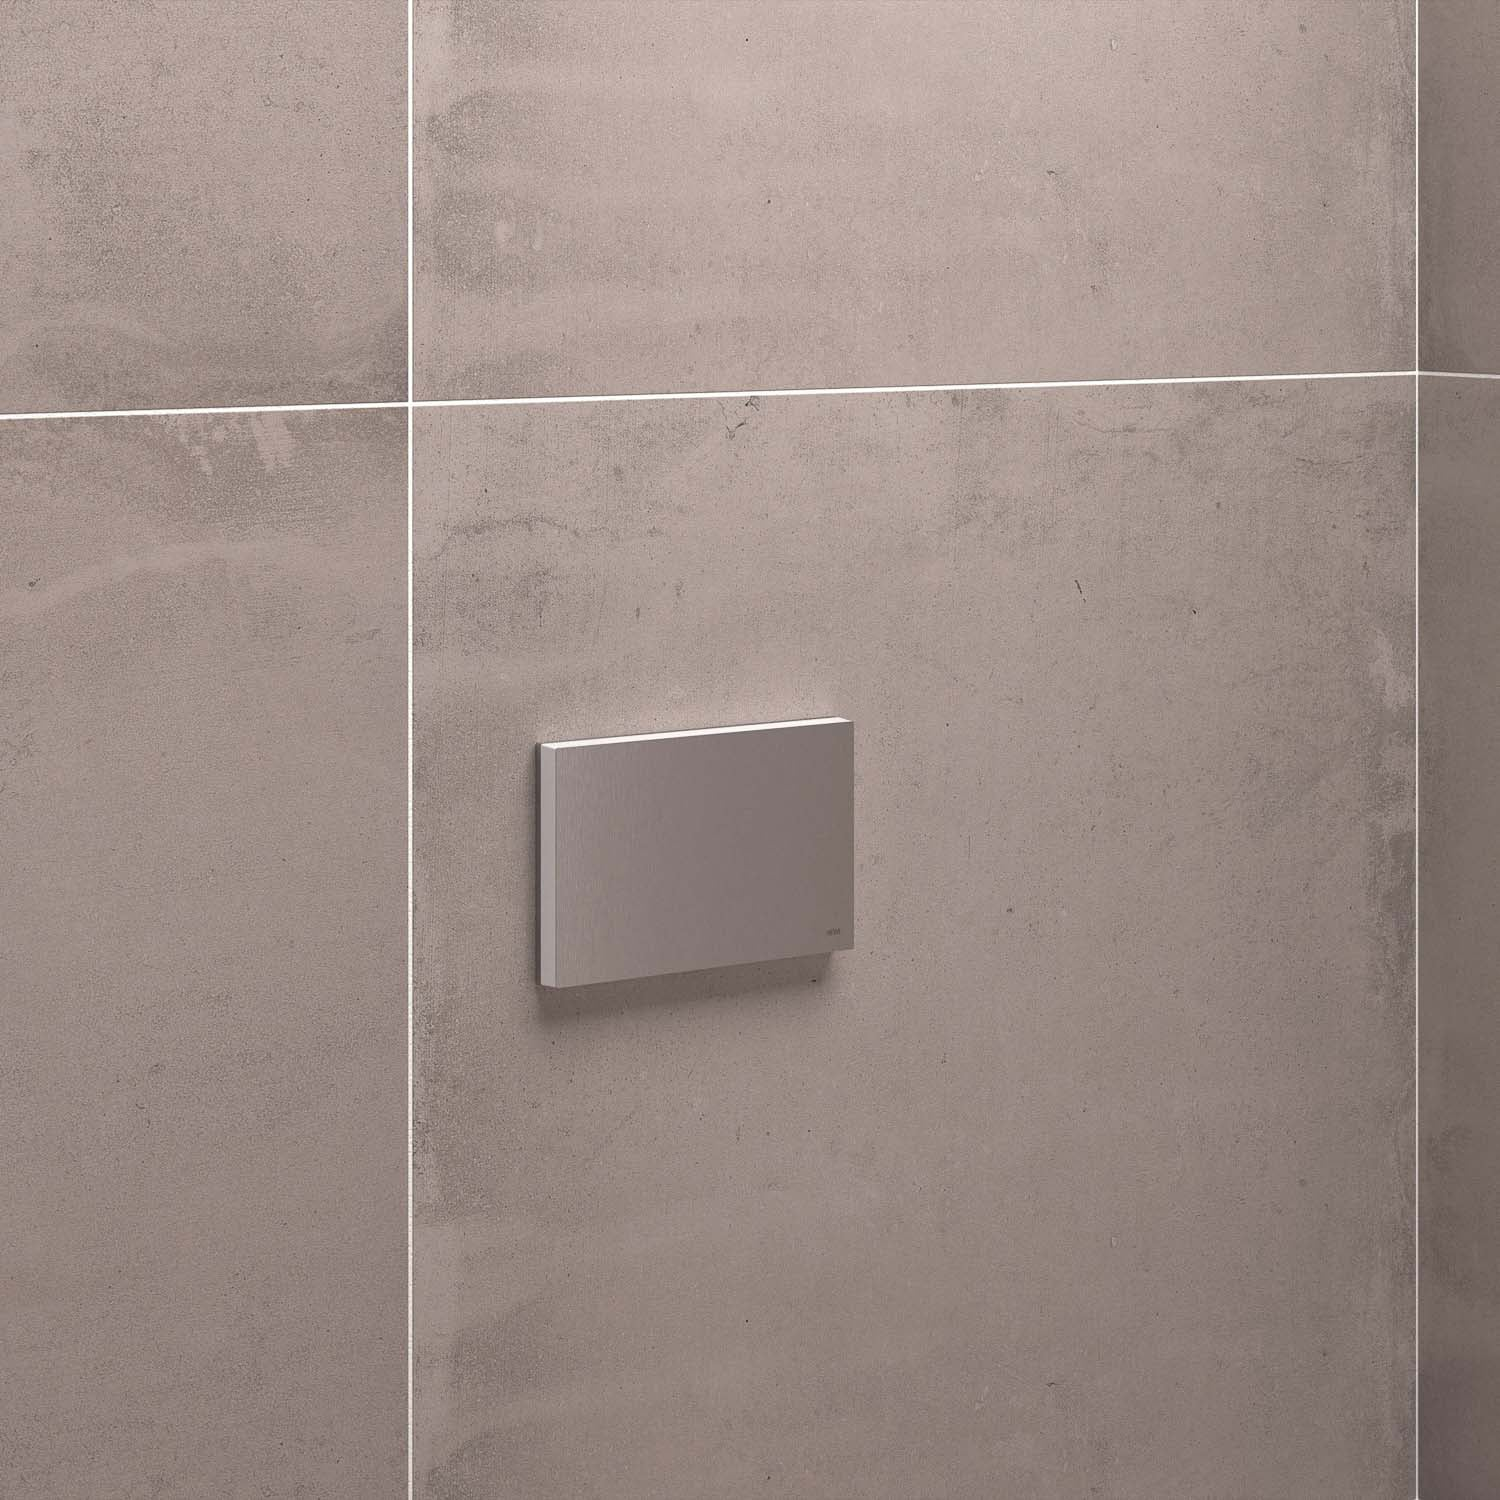 Freestyle Removable Shower Seat Cover with a satin steel finish lifestyle image